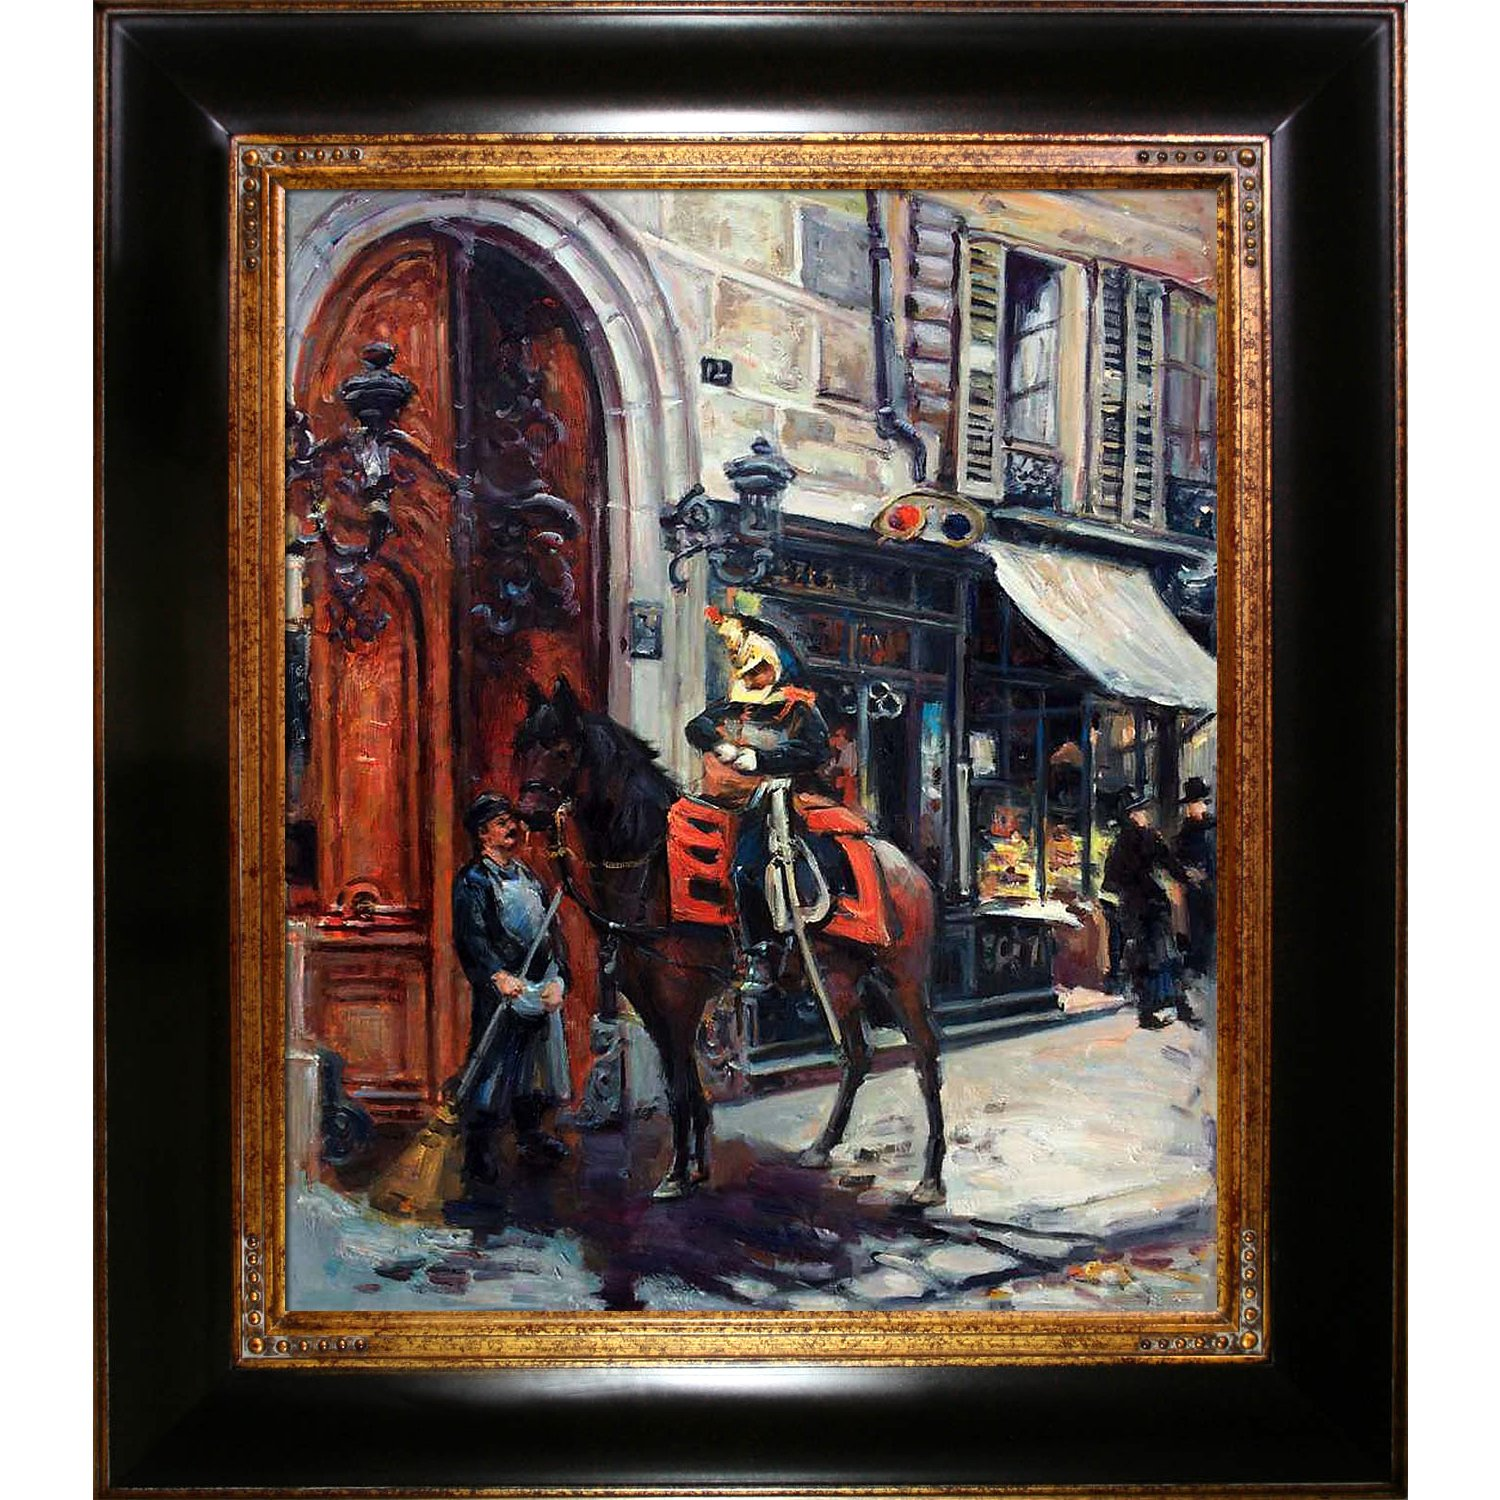 overstockArt La Pastiche The Dispatch Bearer 1879 by Boldini Artwork with Opulent Frame